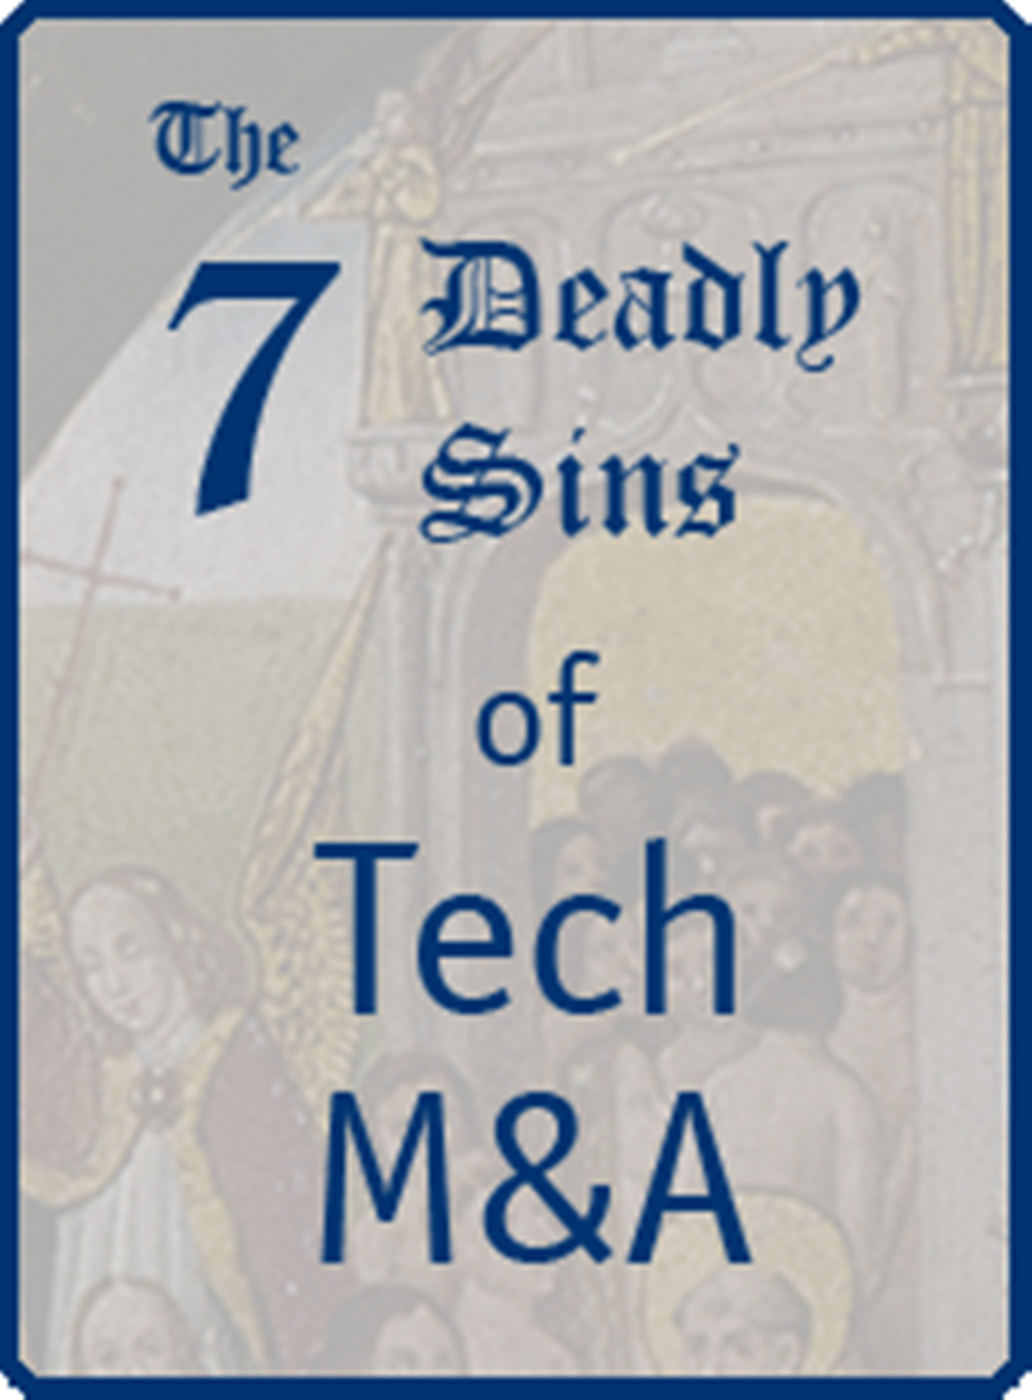 Artwork for 7 Deadly Sins of Tech M&A: #2 & 3